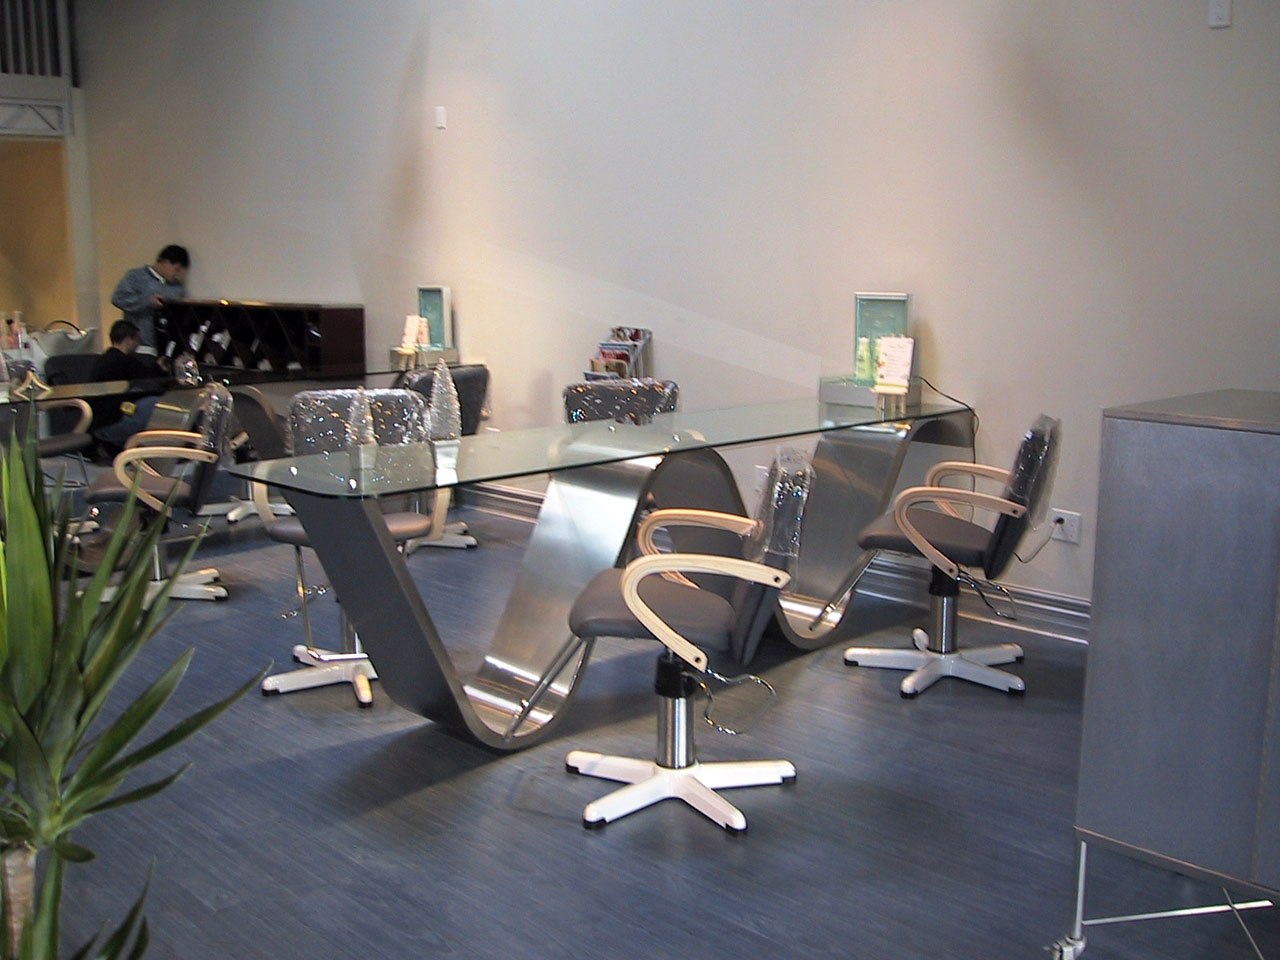 Retail-Environmnet-Salon-3